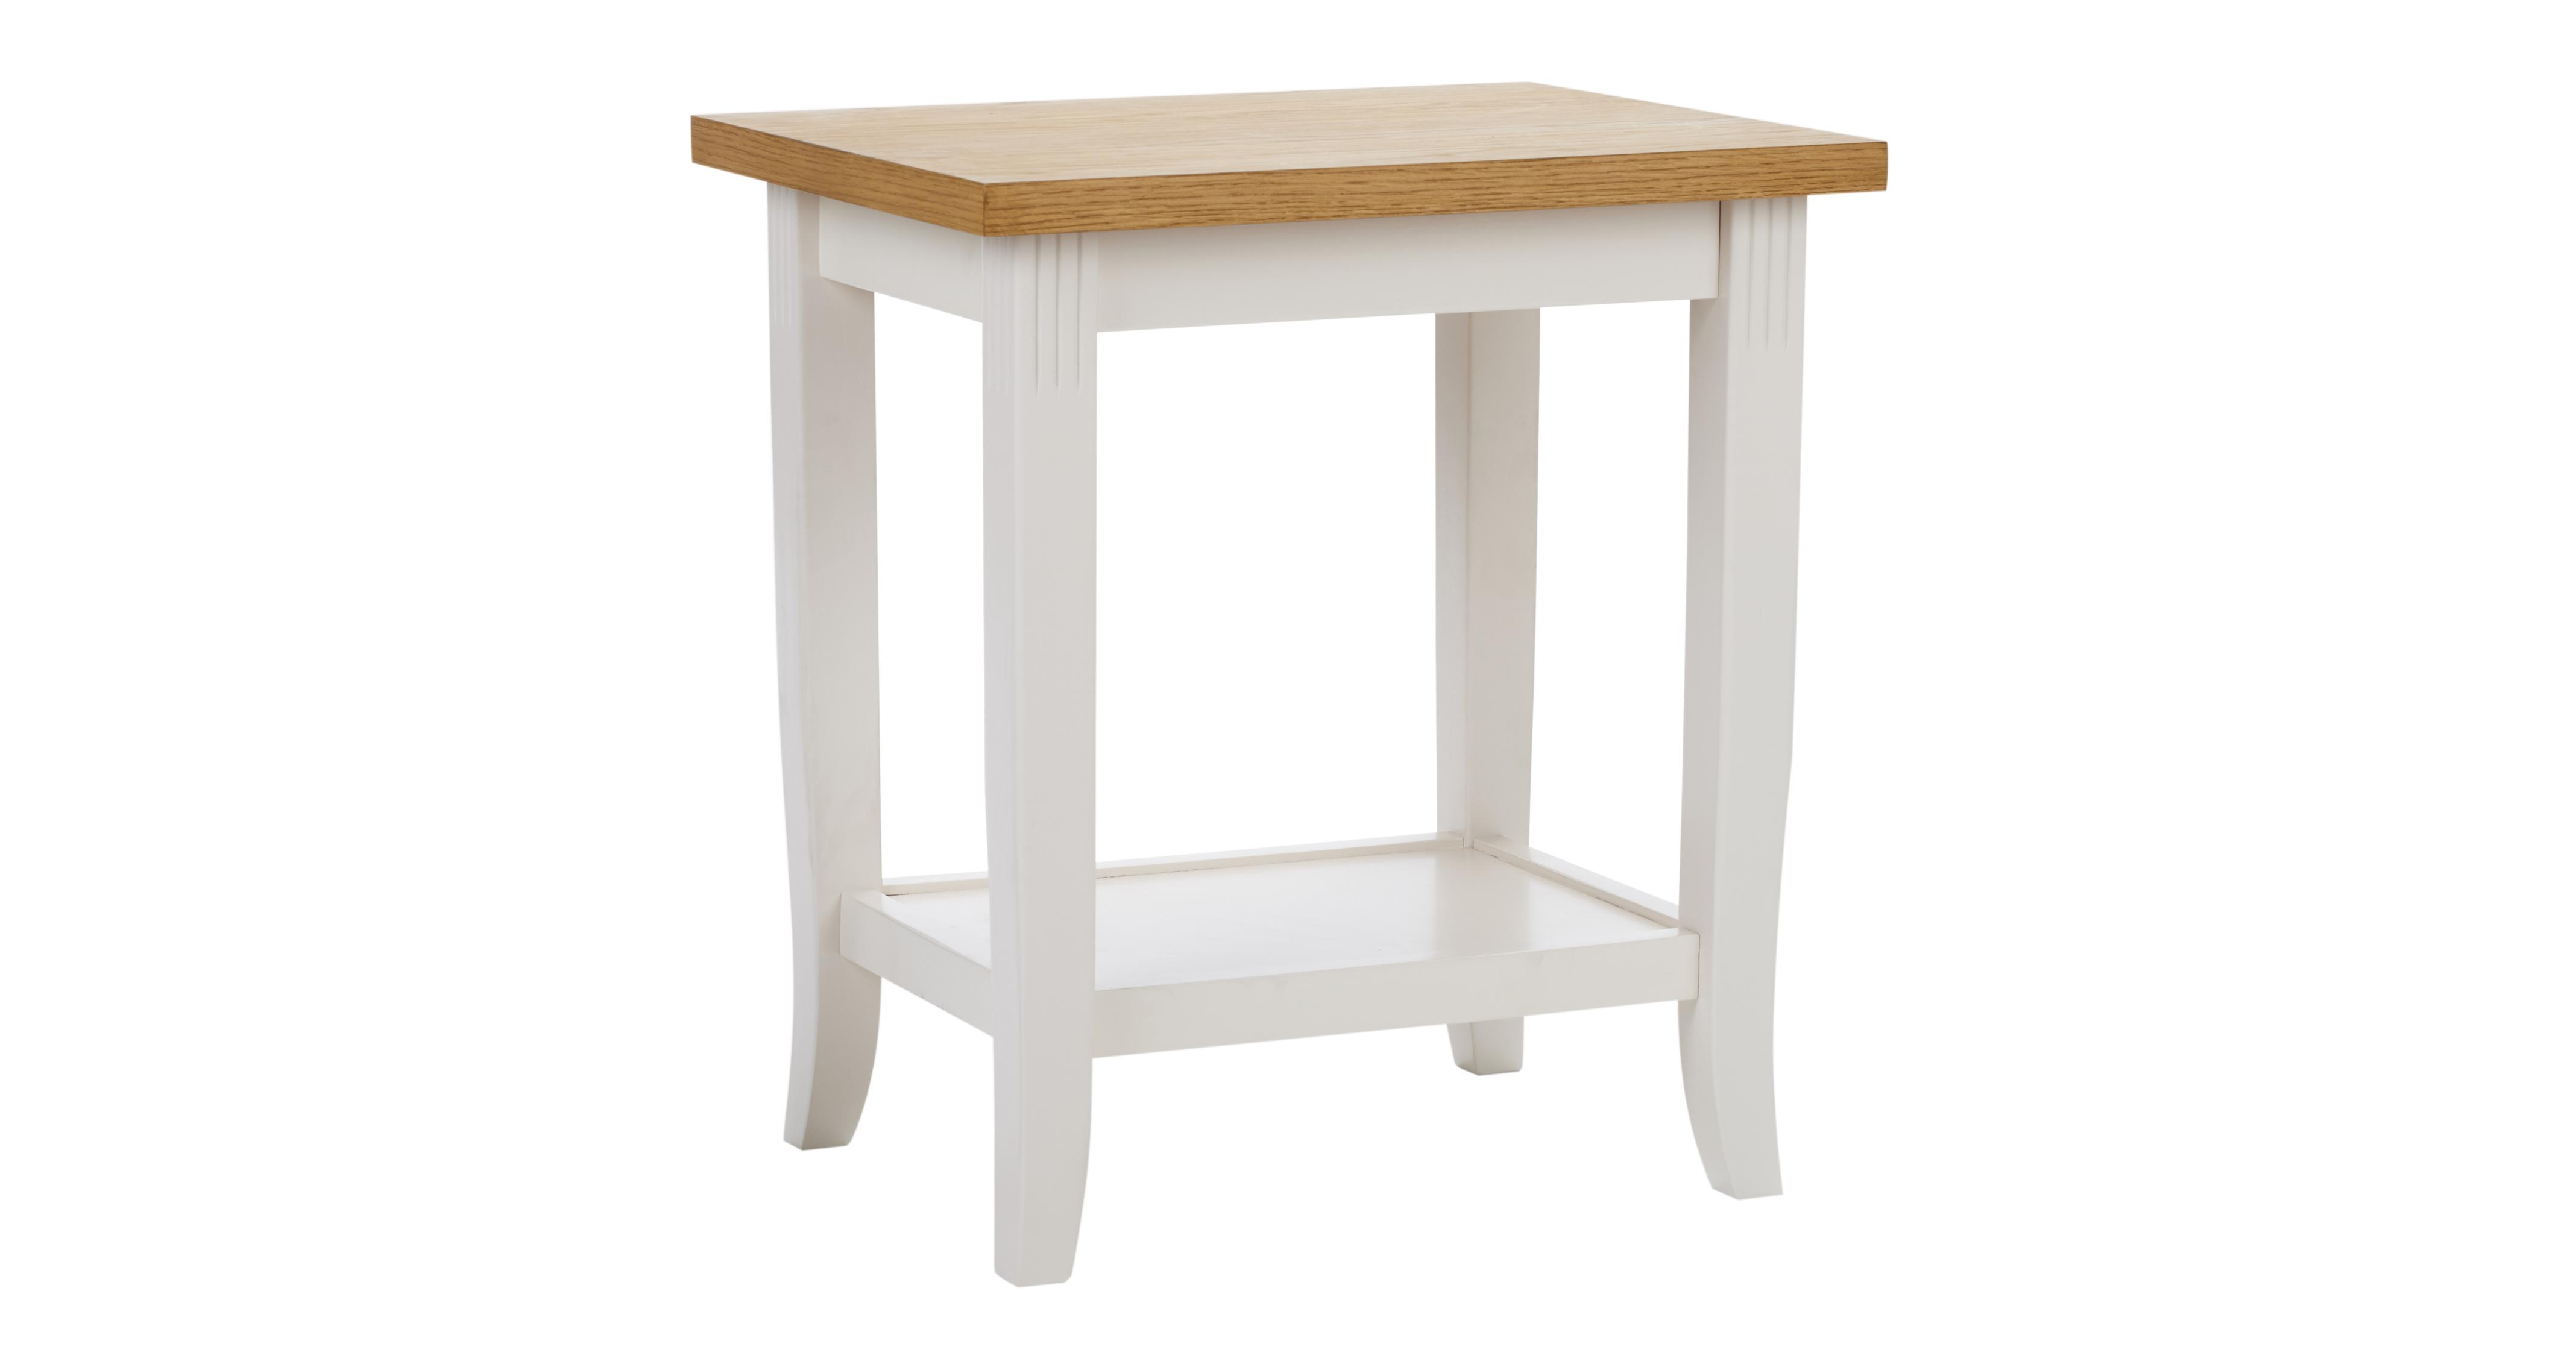 Evesham lamp table dfs for Lamp table dfs